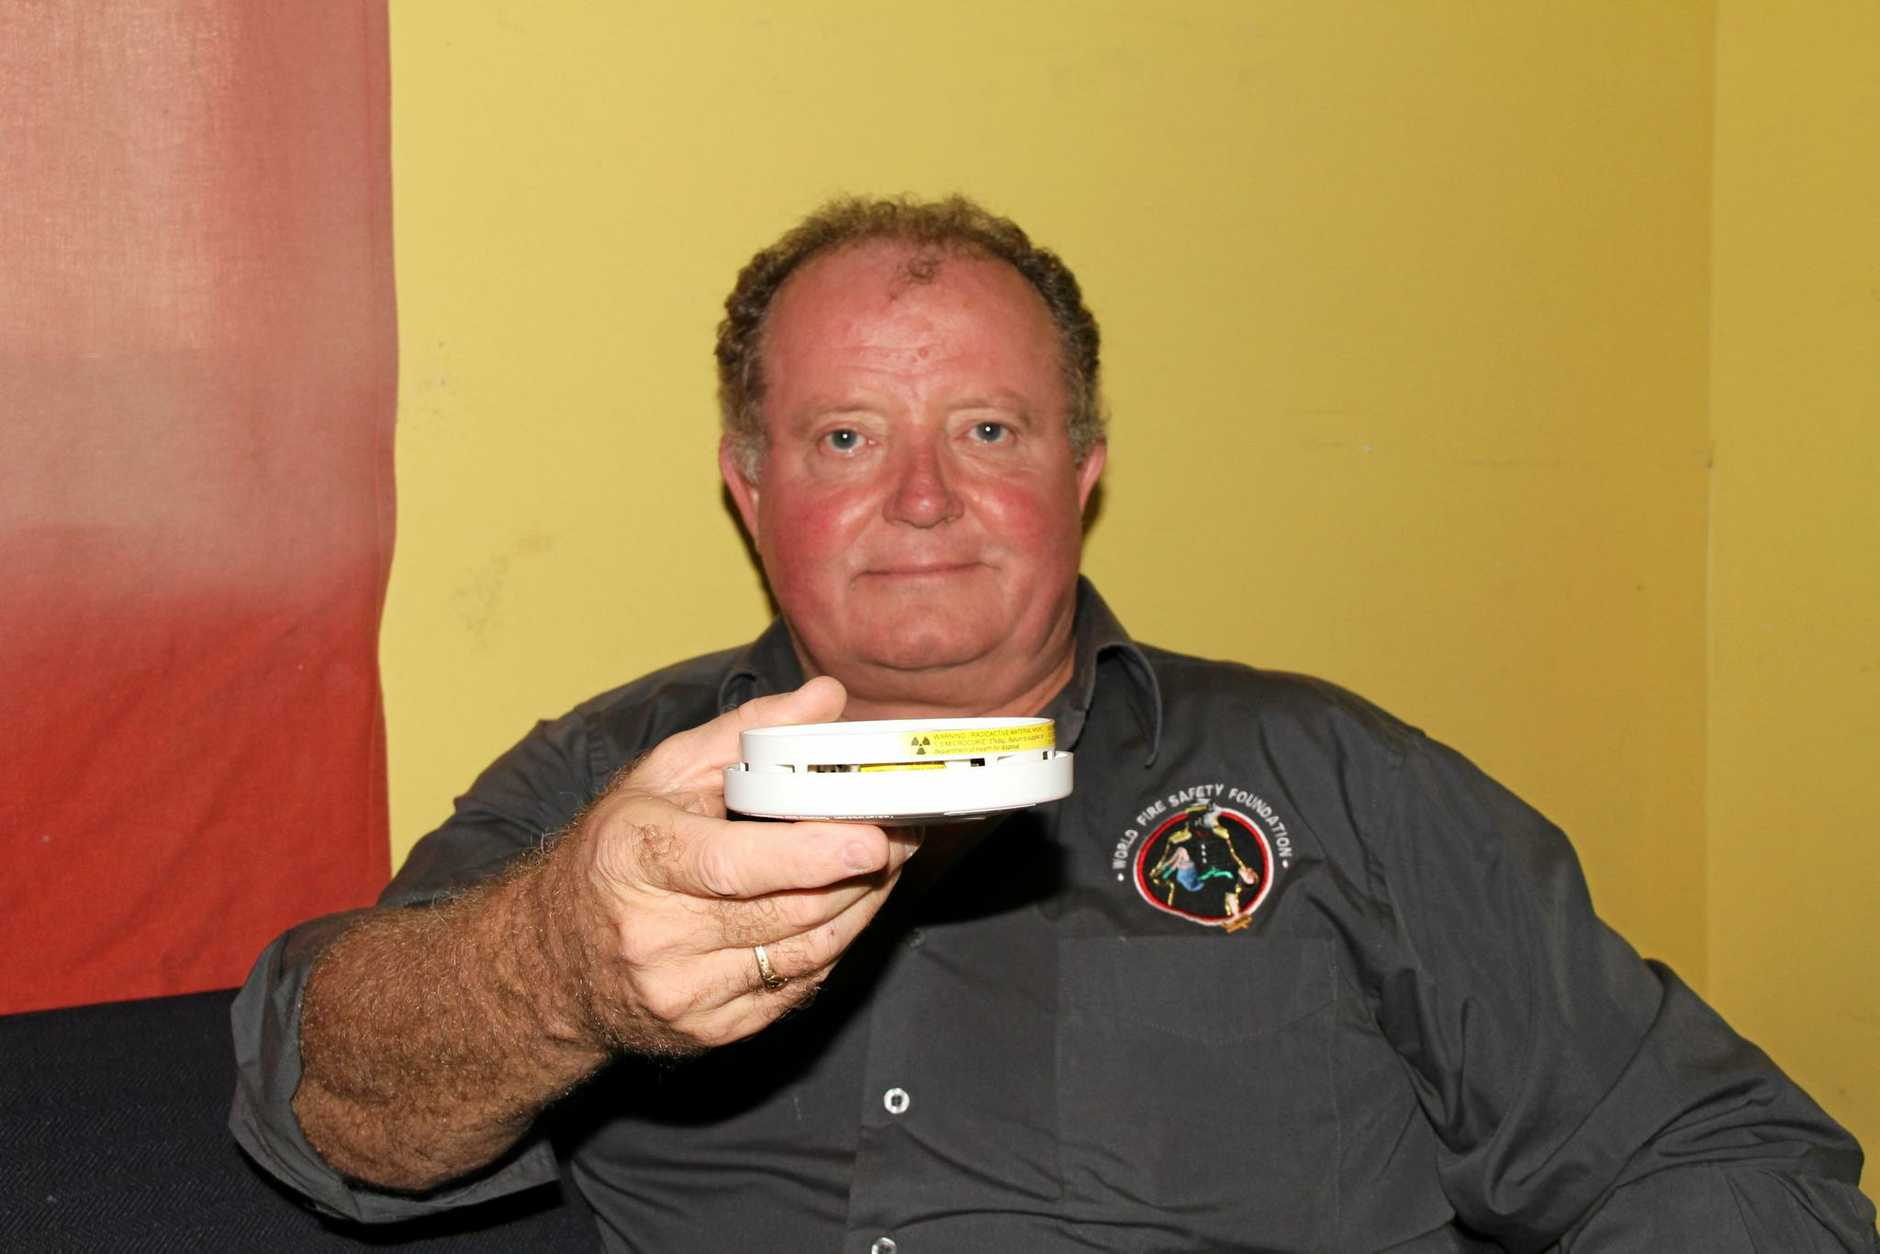 CHECK THIS: World Fire Safety Foundation chairman Adrian Butler shows the radioactive tag present on and inside the inferior ionisation smoke alarms.